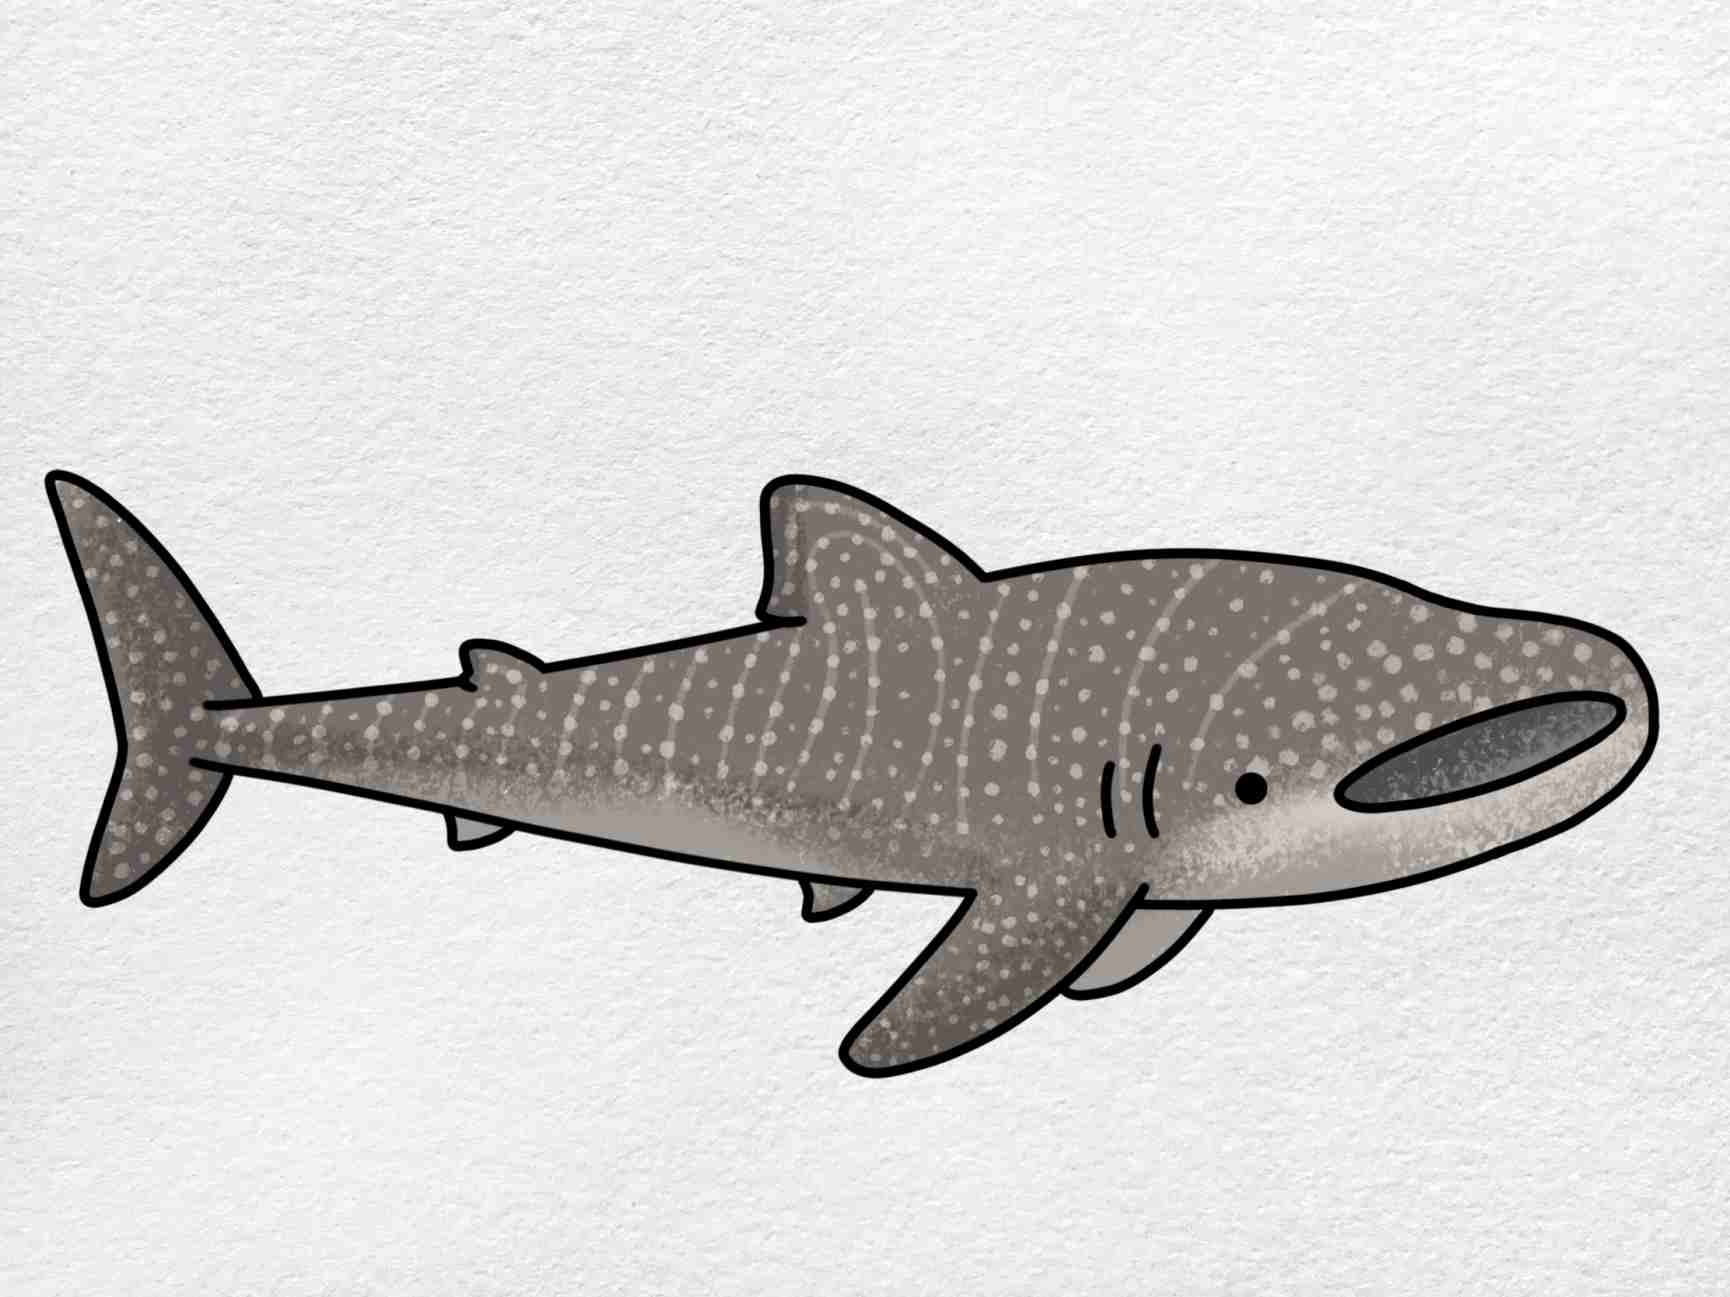 Whale Shark Drawing: Step 6